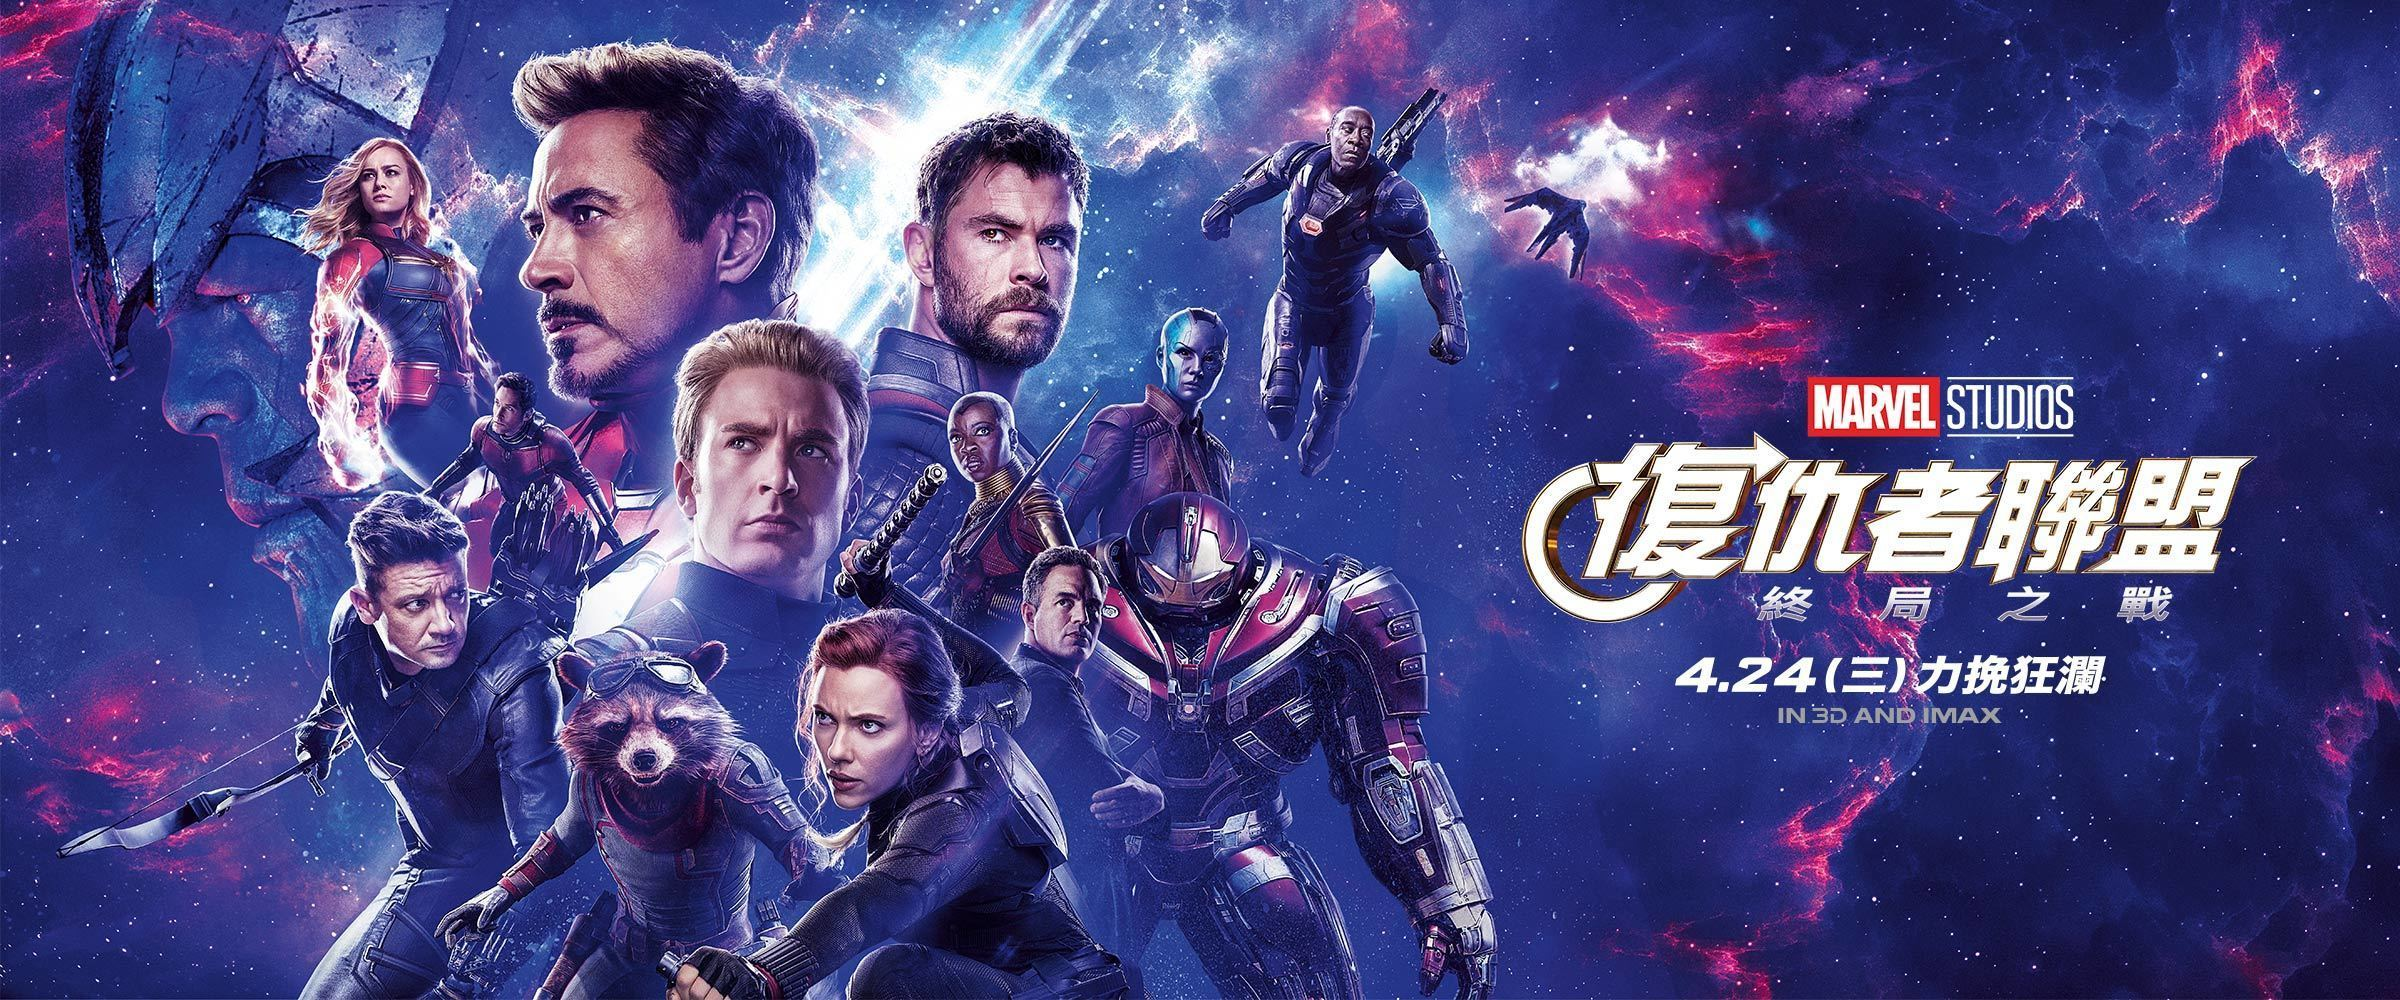 Avengers : End Game